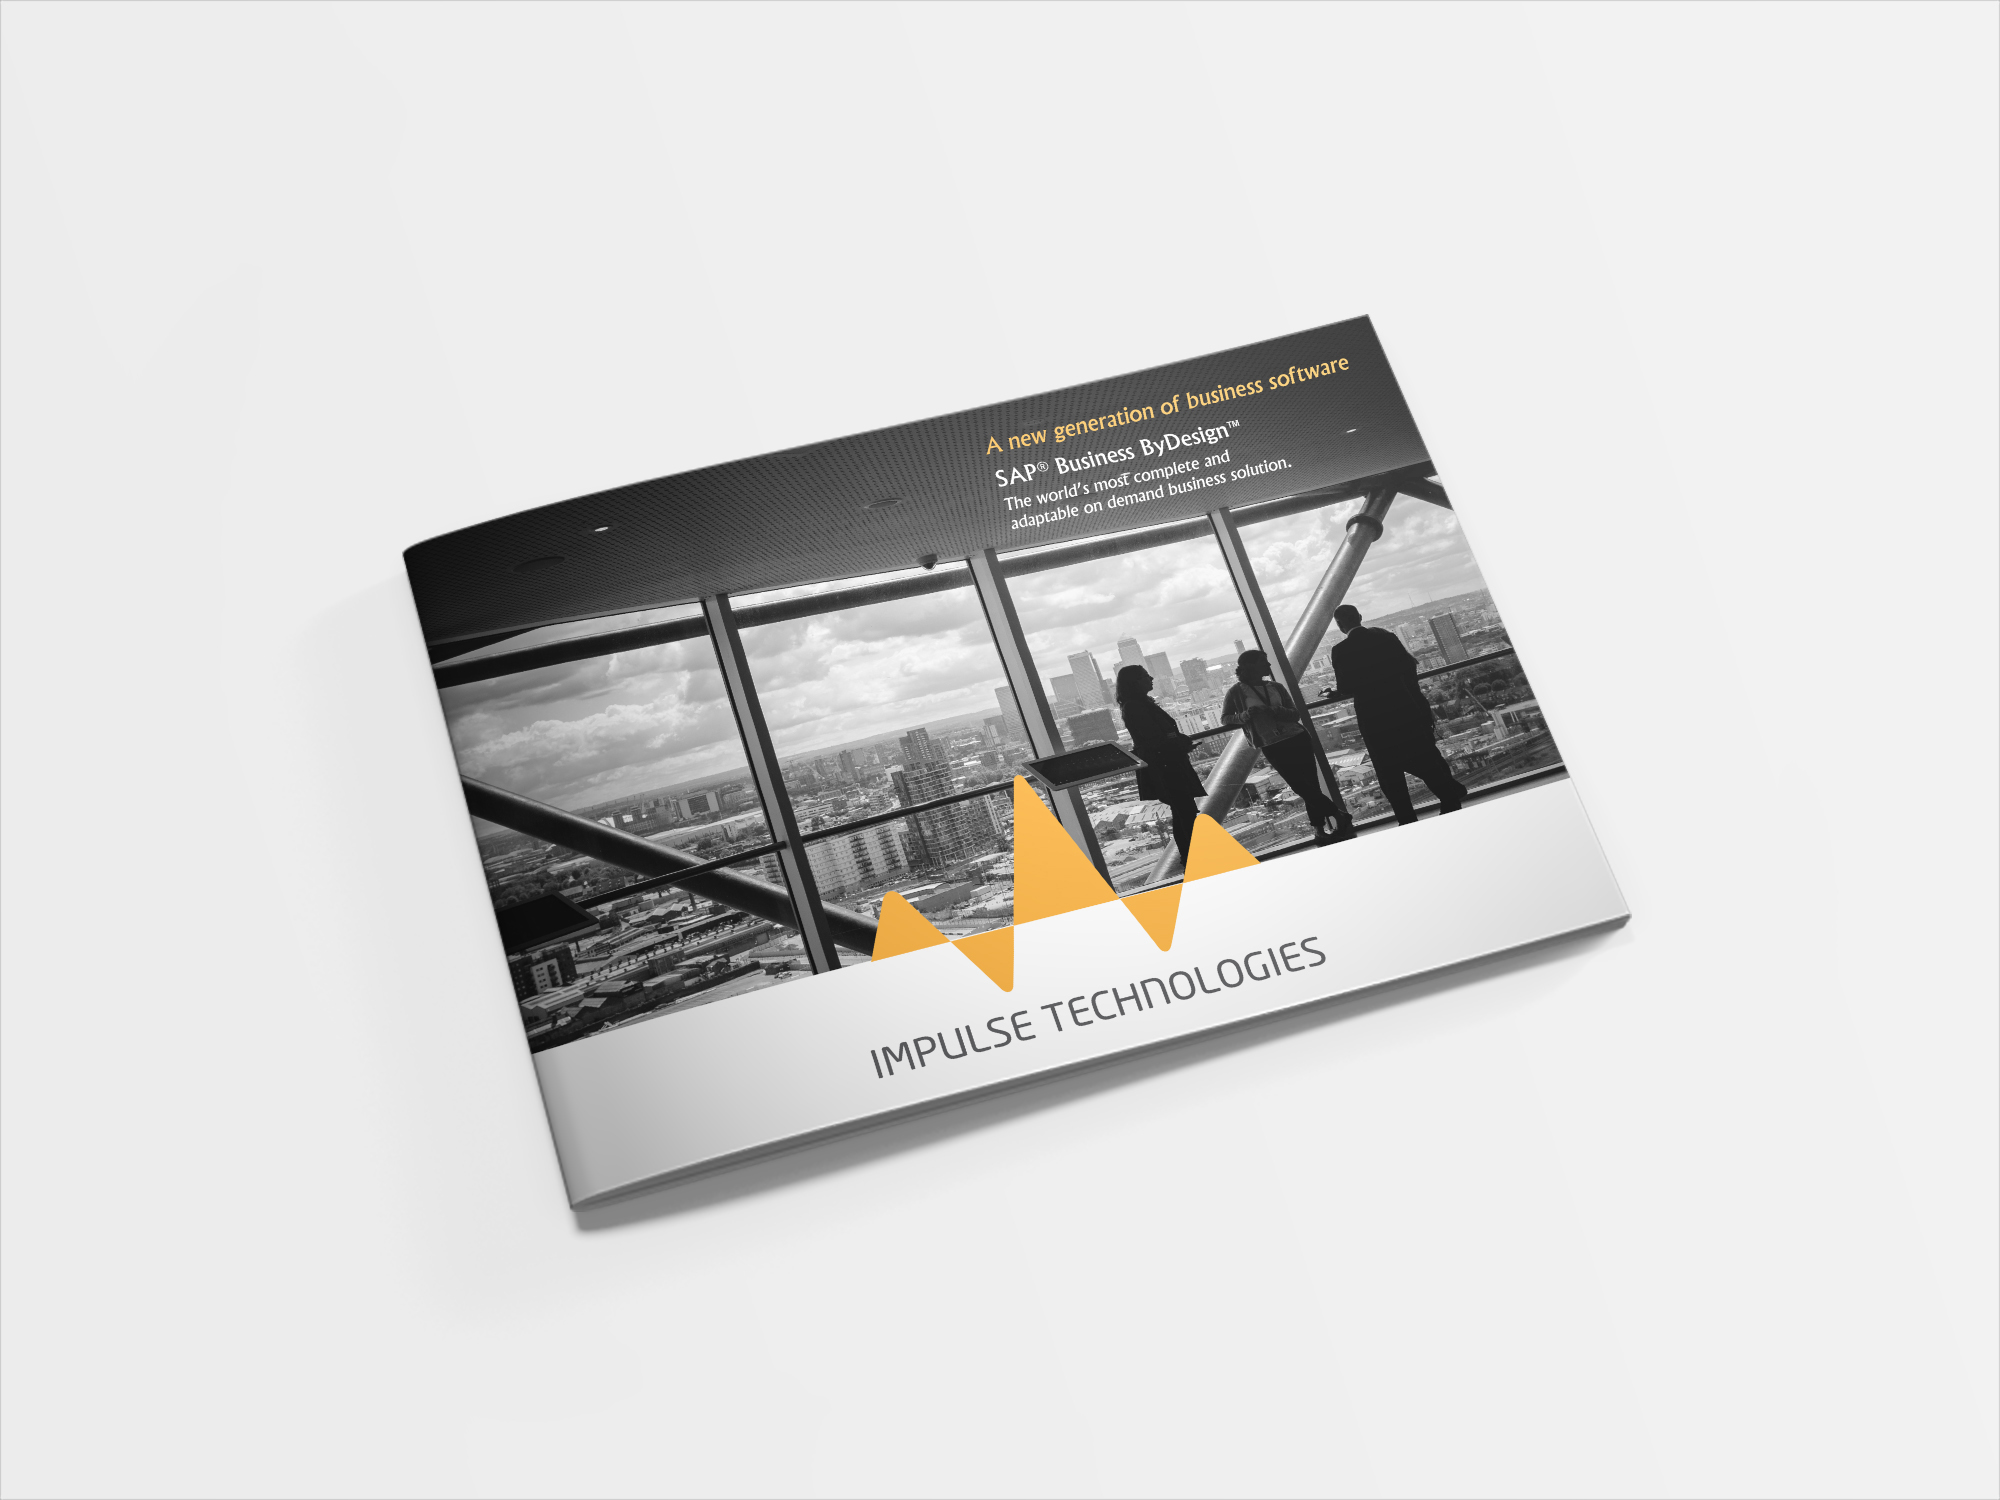 a4-landscape-booklet-mockup-free-version-copy